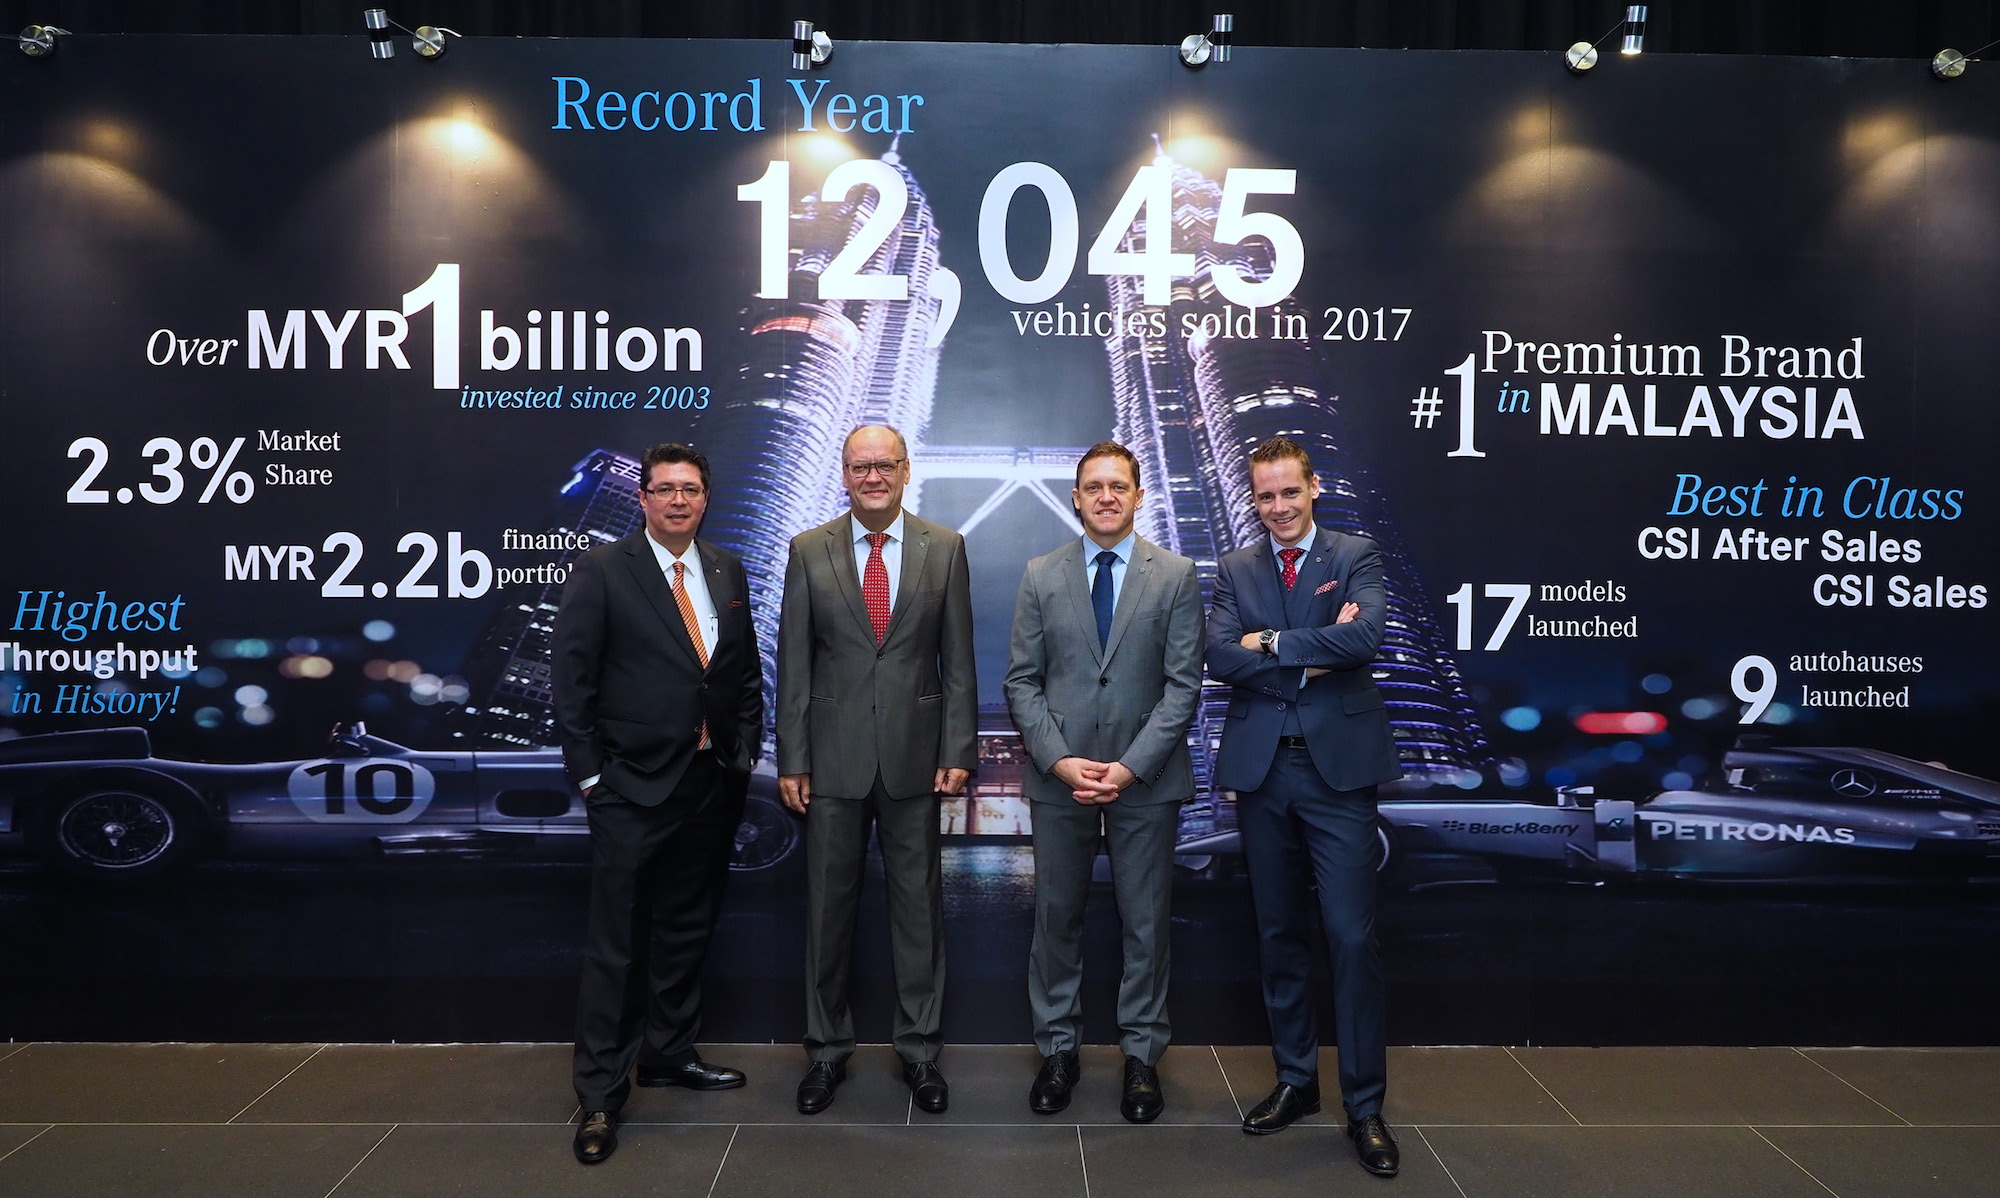 mercedes benz malaysia doesn t like keeping records breaks them again